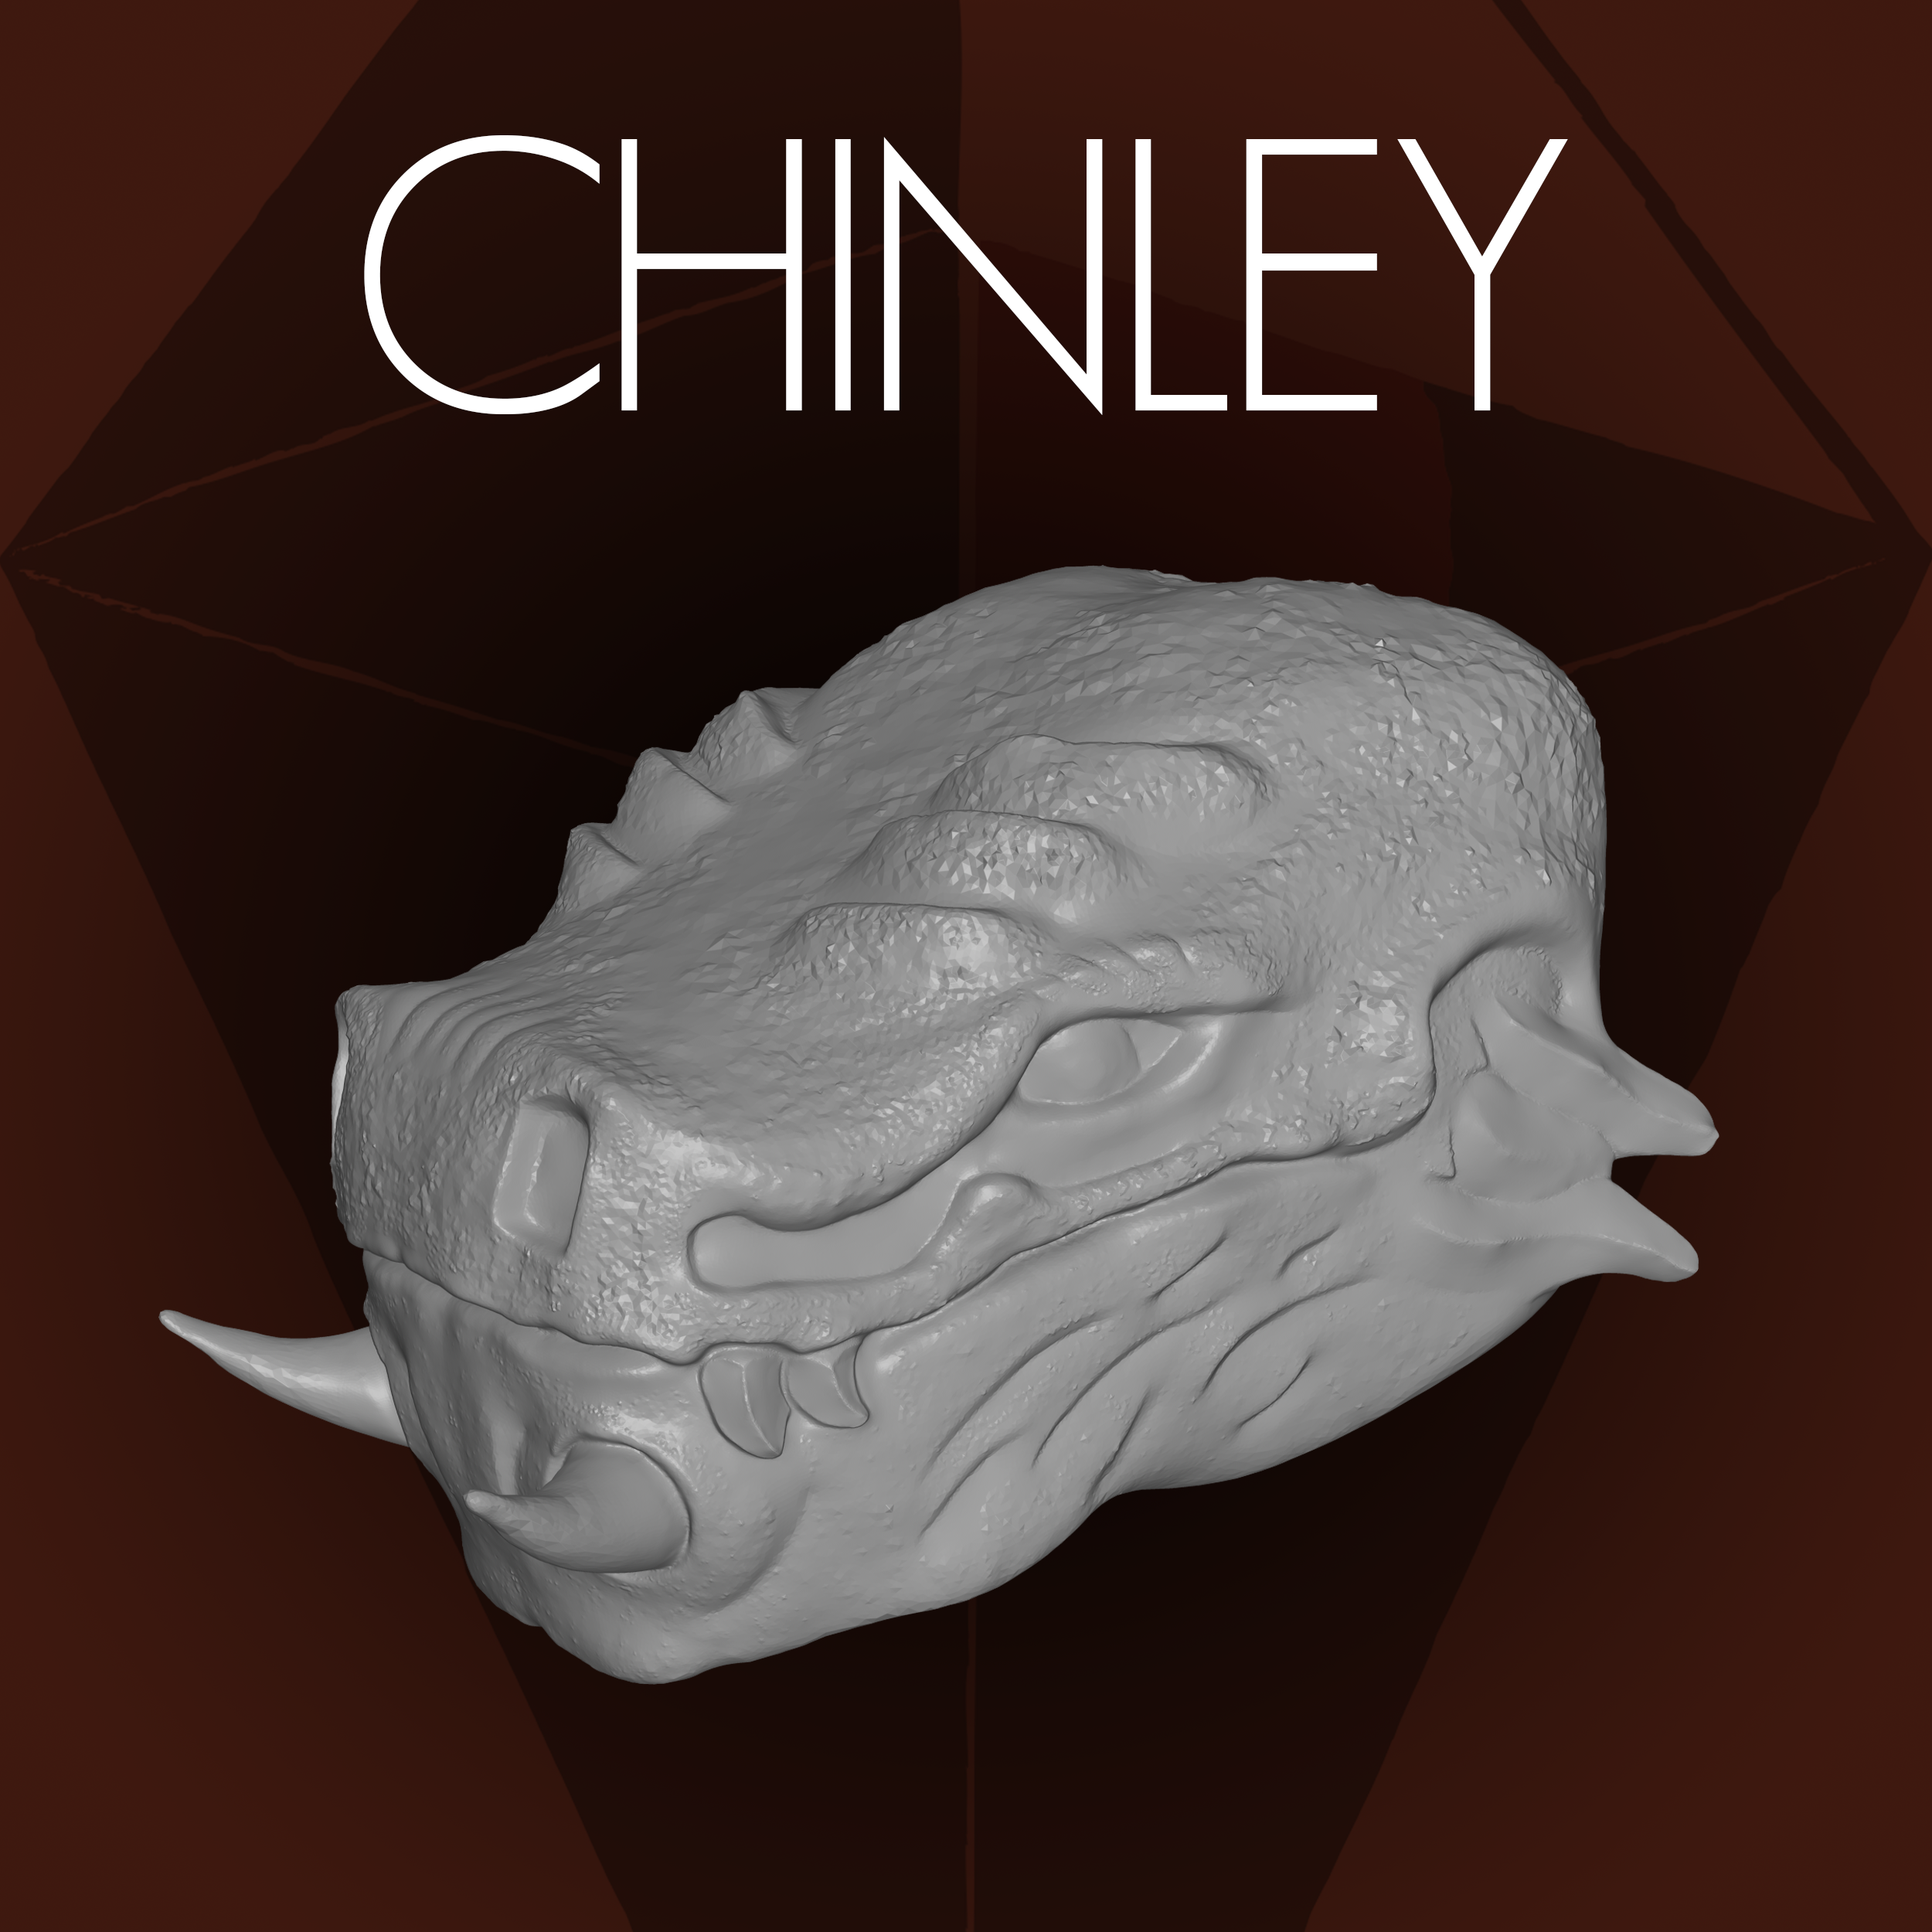 Chinley_Image_1.png